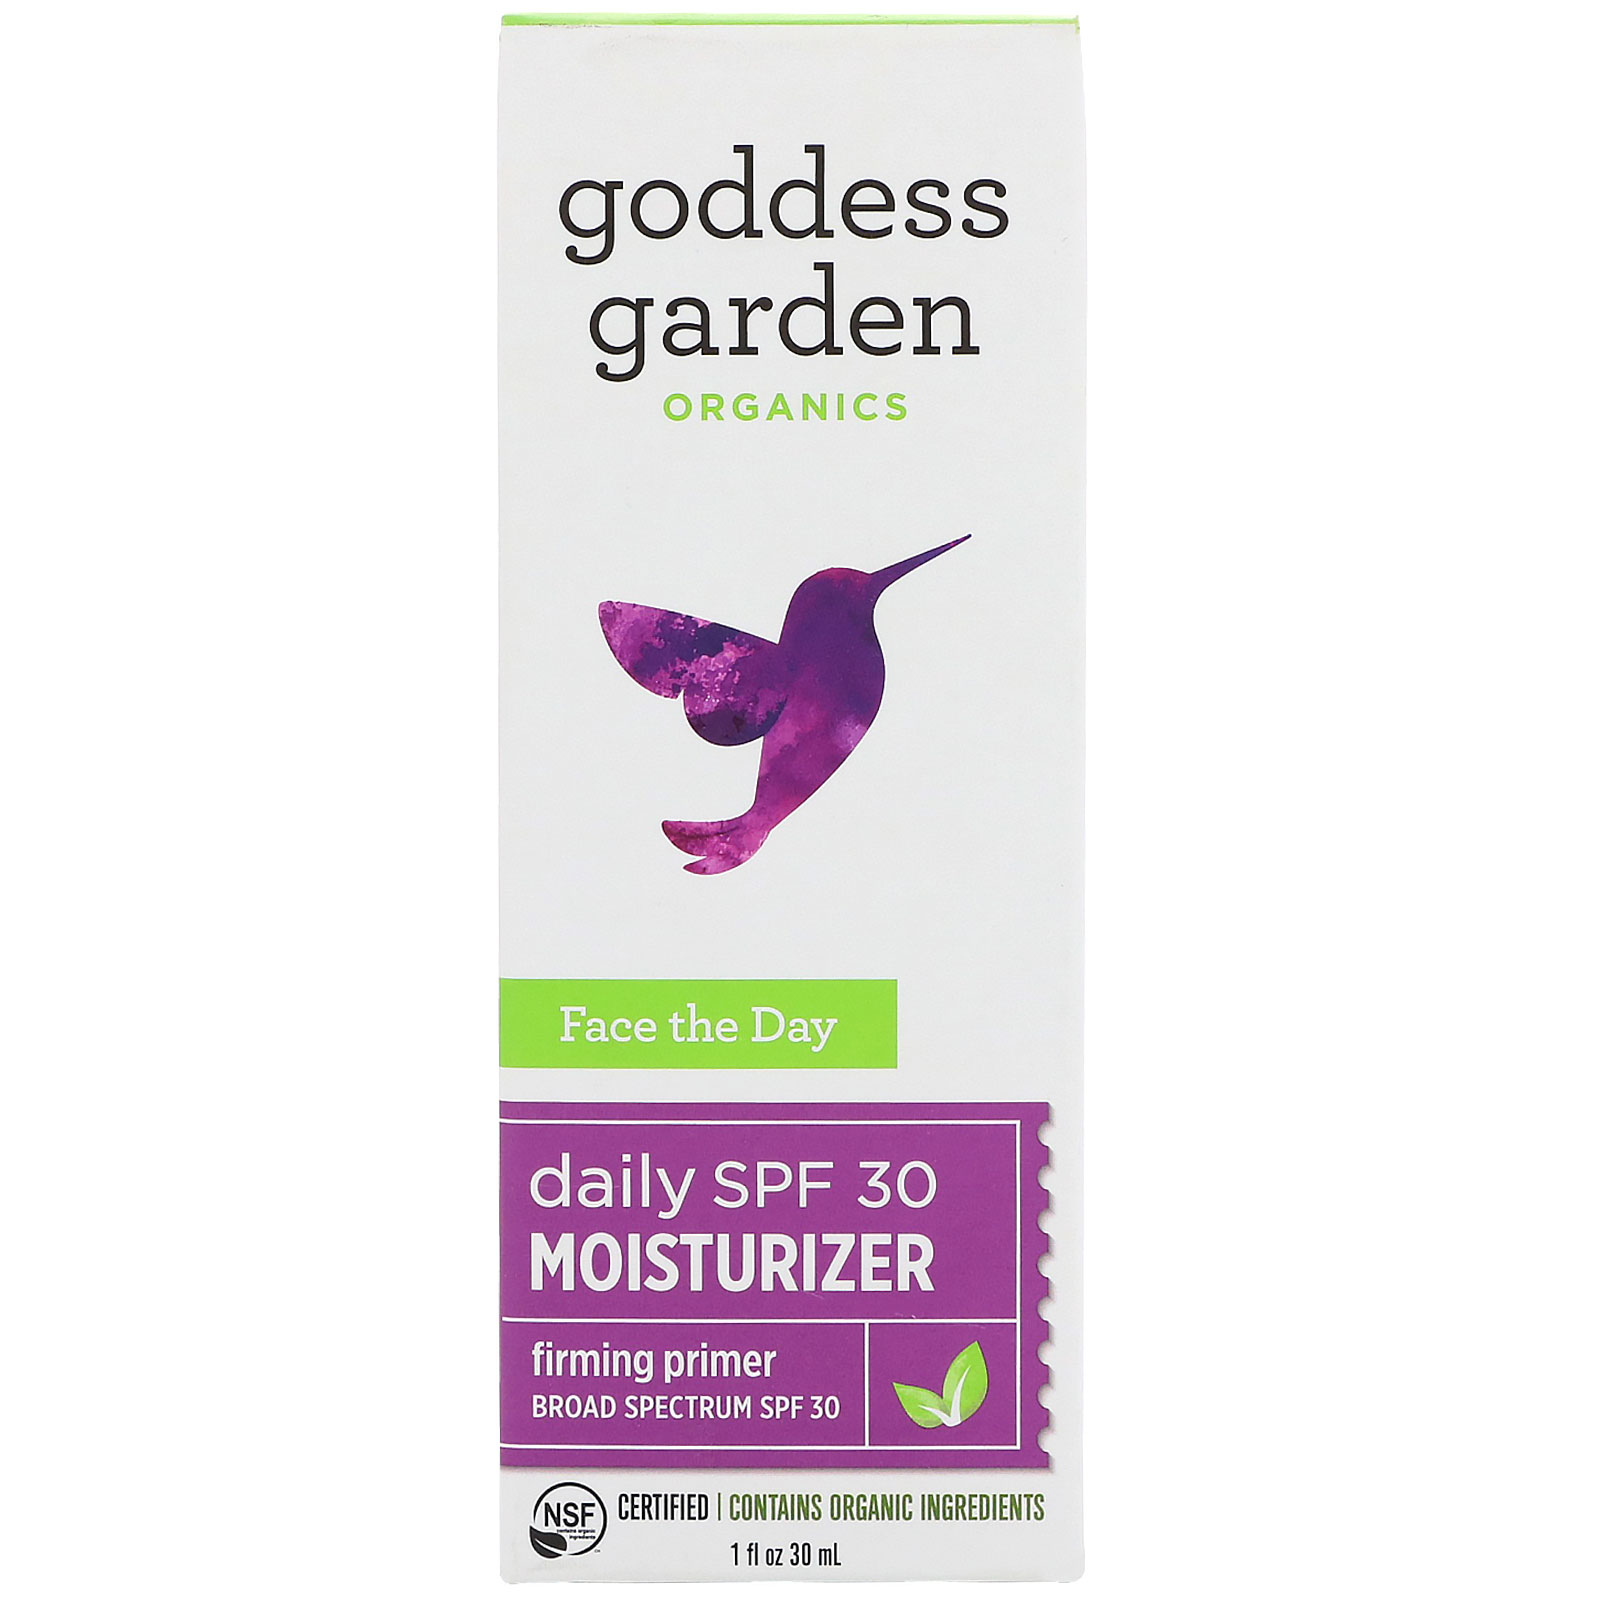 greasy a the be quite can eventually spf and natural under is beauty essentials but worn options healthy makeup application sunscreen after i upon all travel summer certified organic it lessens easily goddess garden organics found